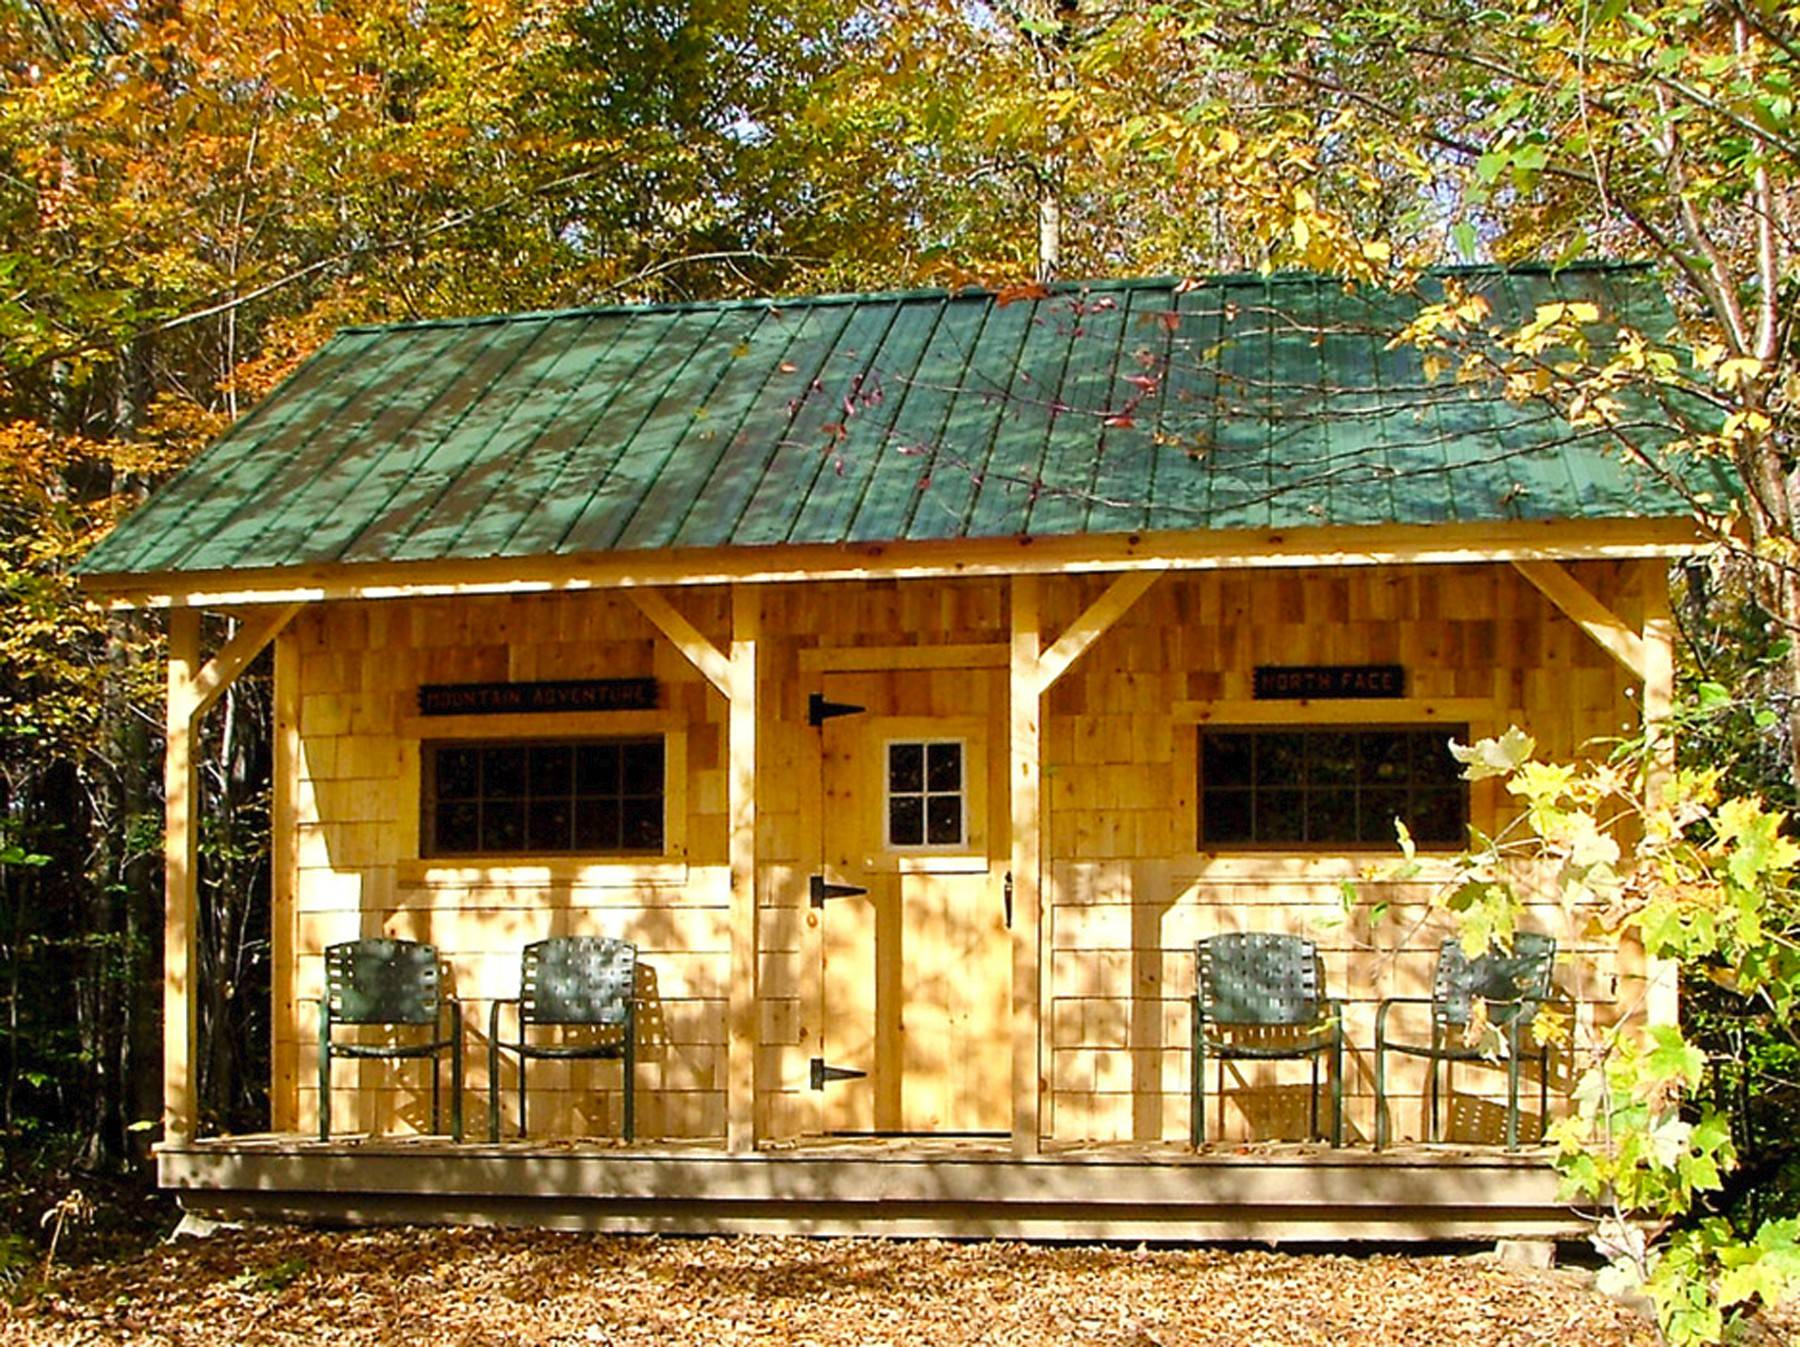 Many online companies sell pre-manufactured building kits, like this Vermont Cottage by the Jamaica Cottage Shop. This easy-to-assemble structures have many creative uses.